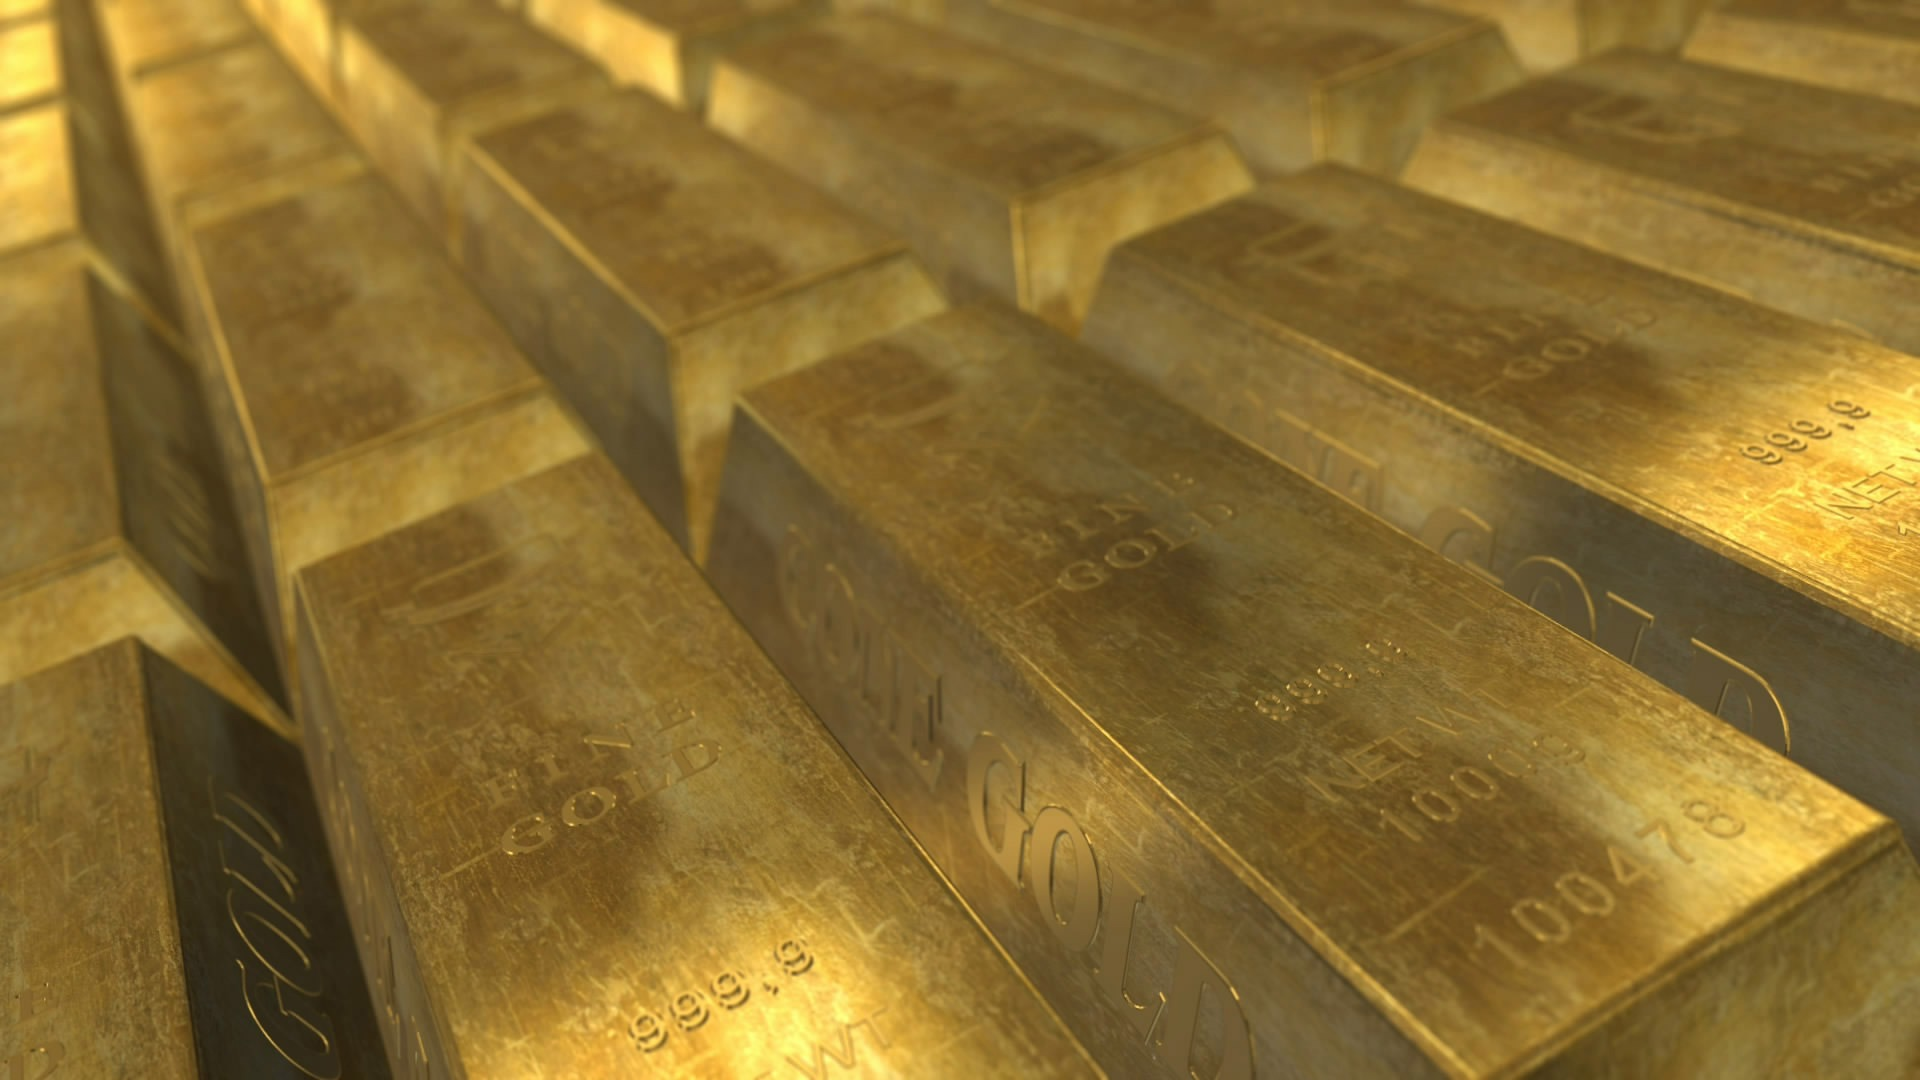 Investment in gold and precious metals is increasing in popularity, and for good reason. Find out why and how to invest in gold with this beginners guide.